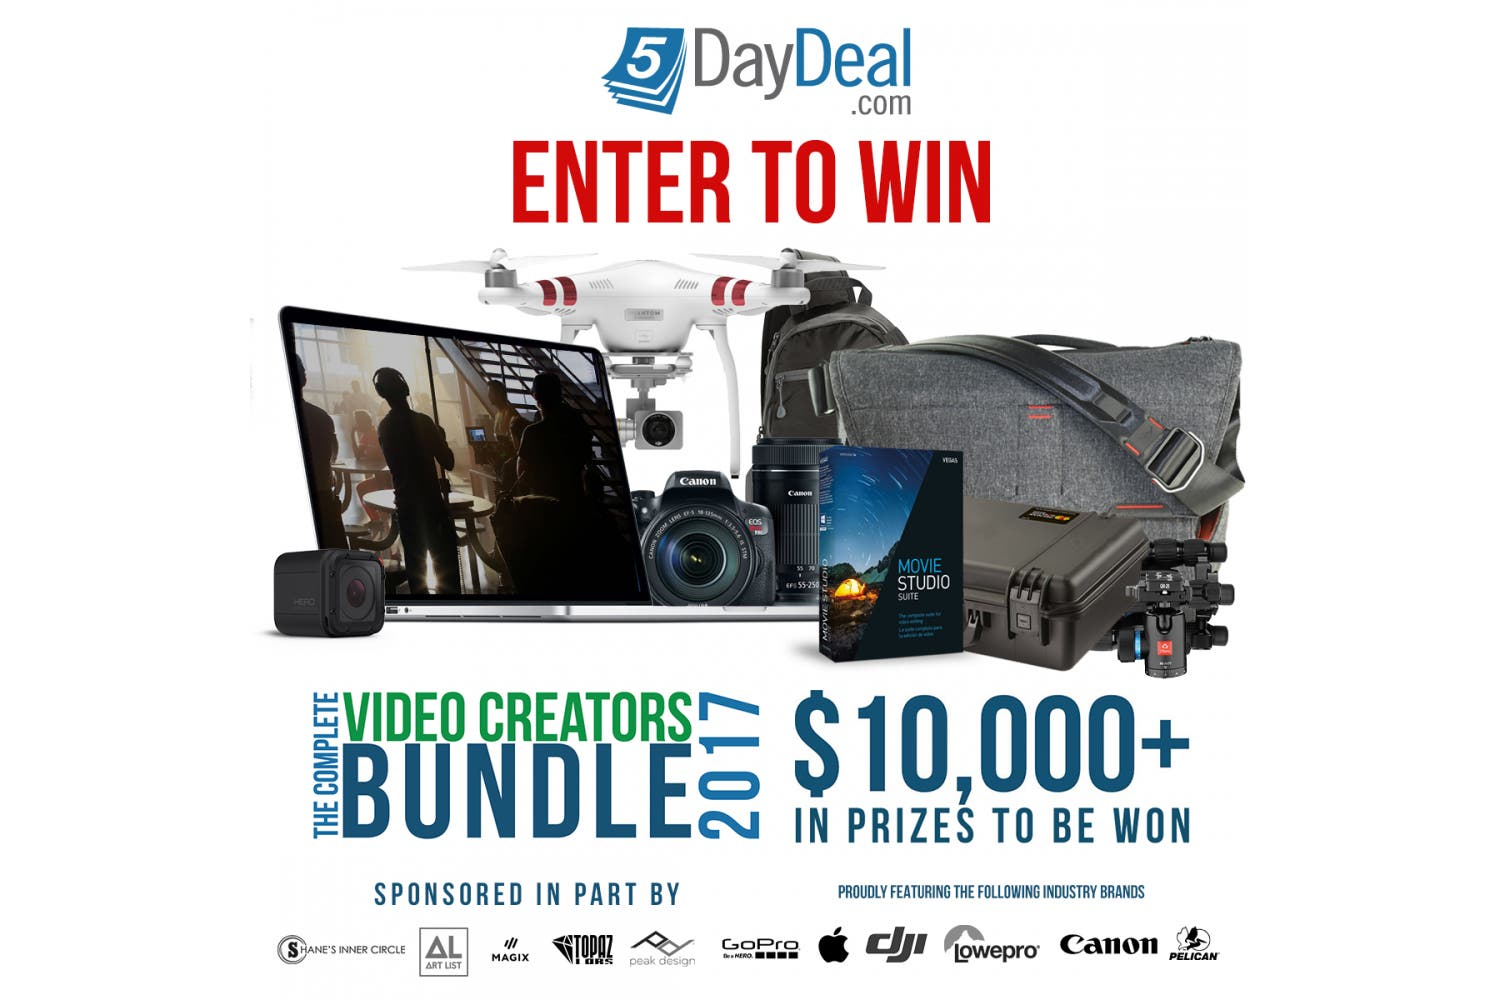 You Could Win $10,000 In Prizes From Our Friends At 5DayDeal